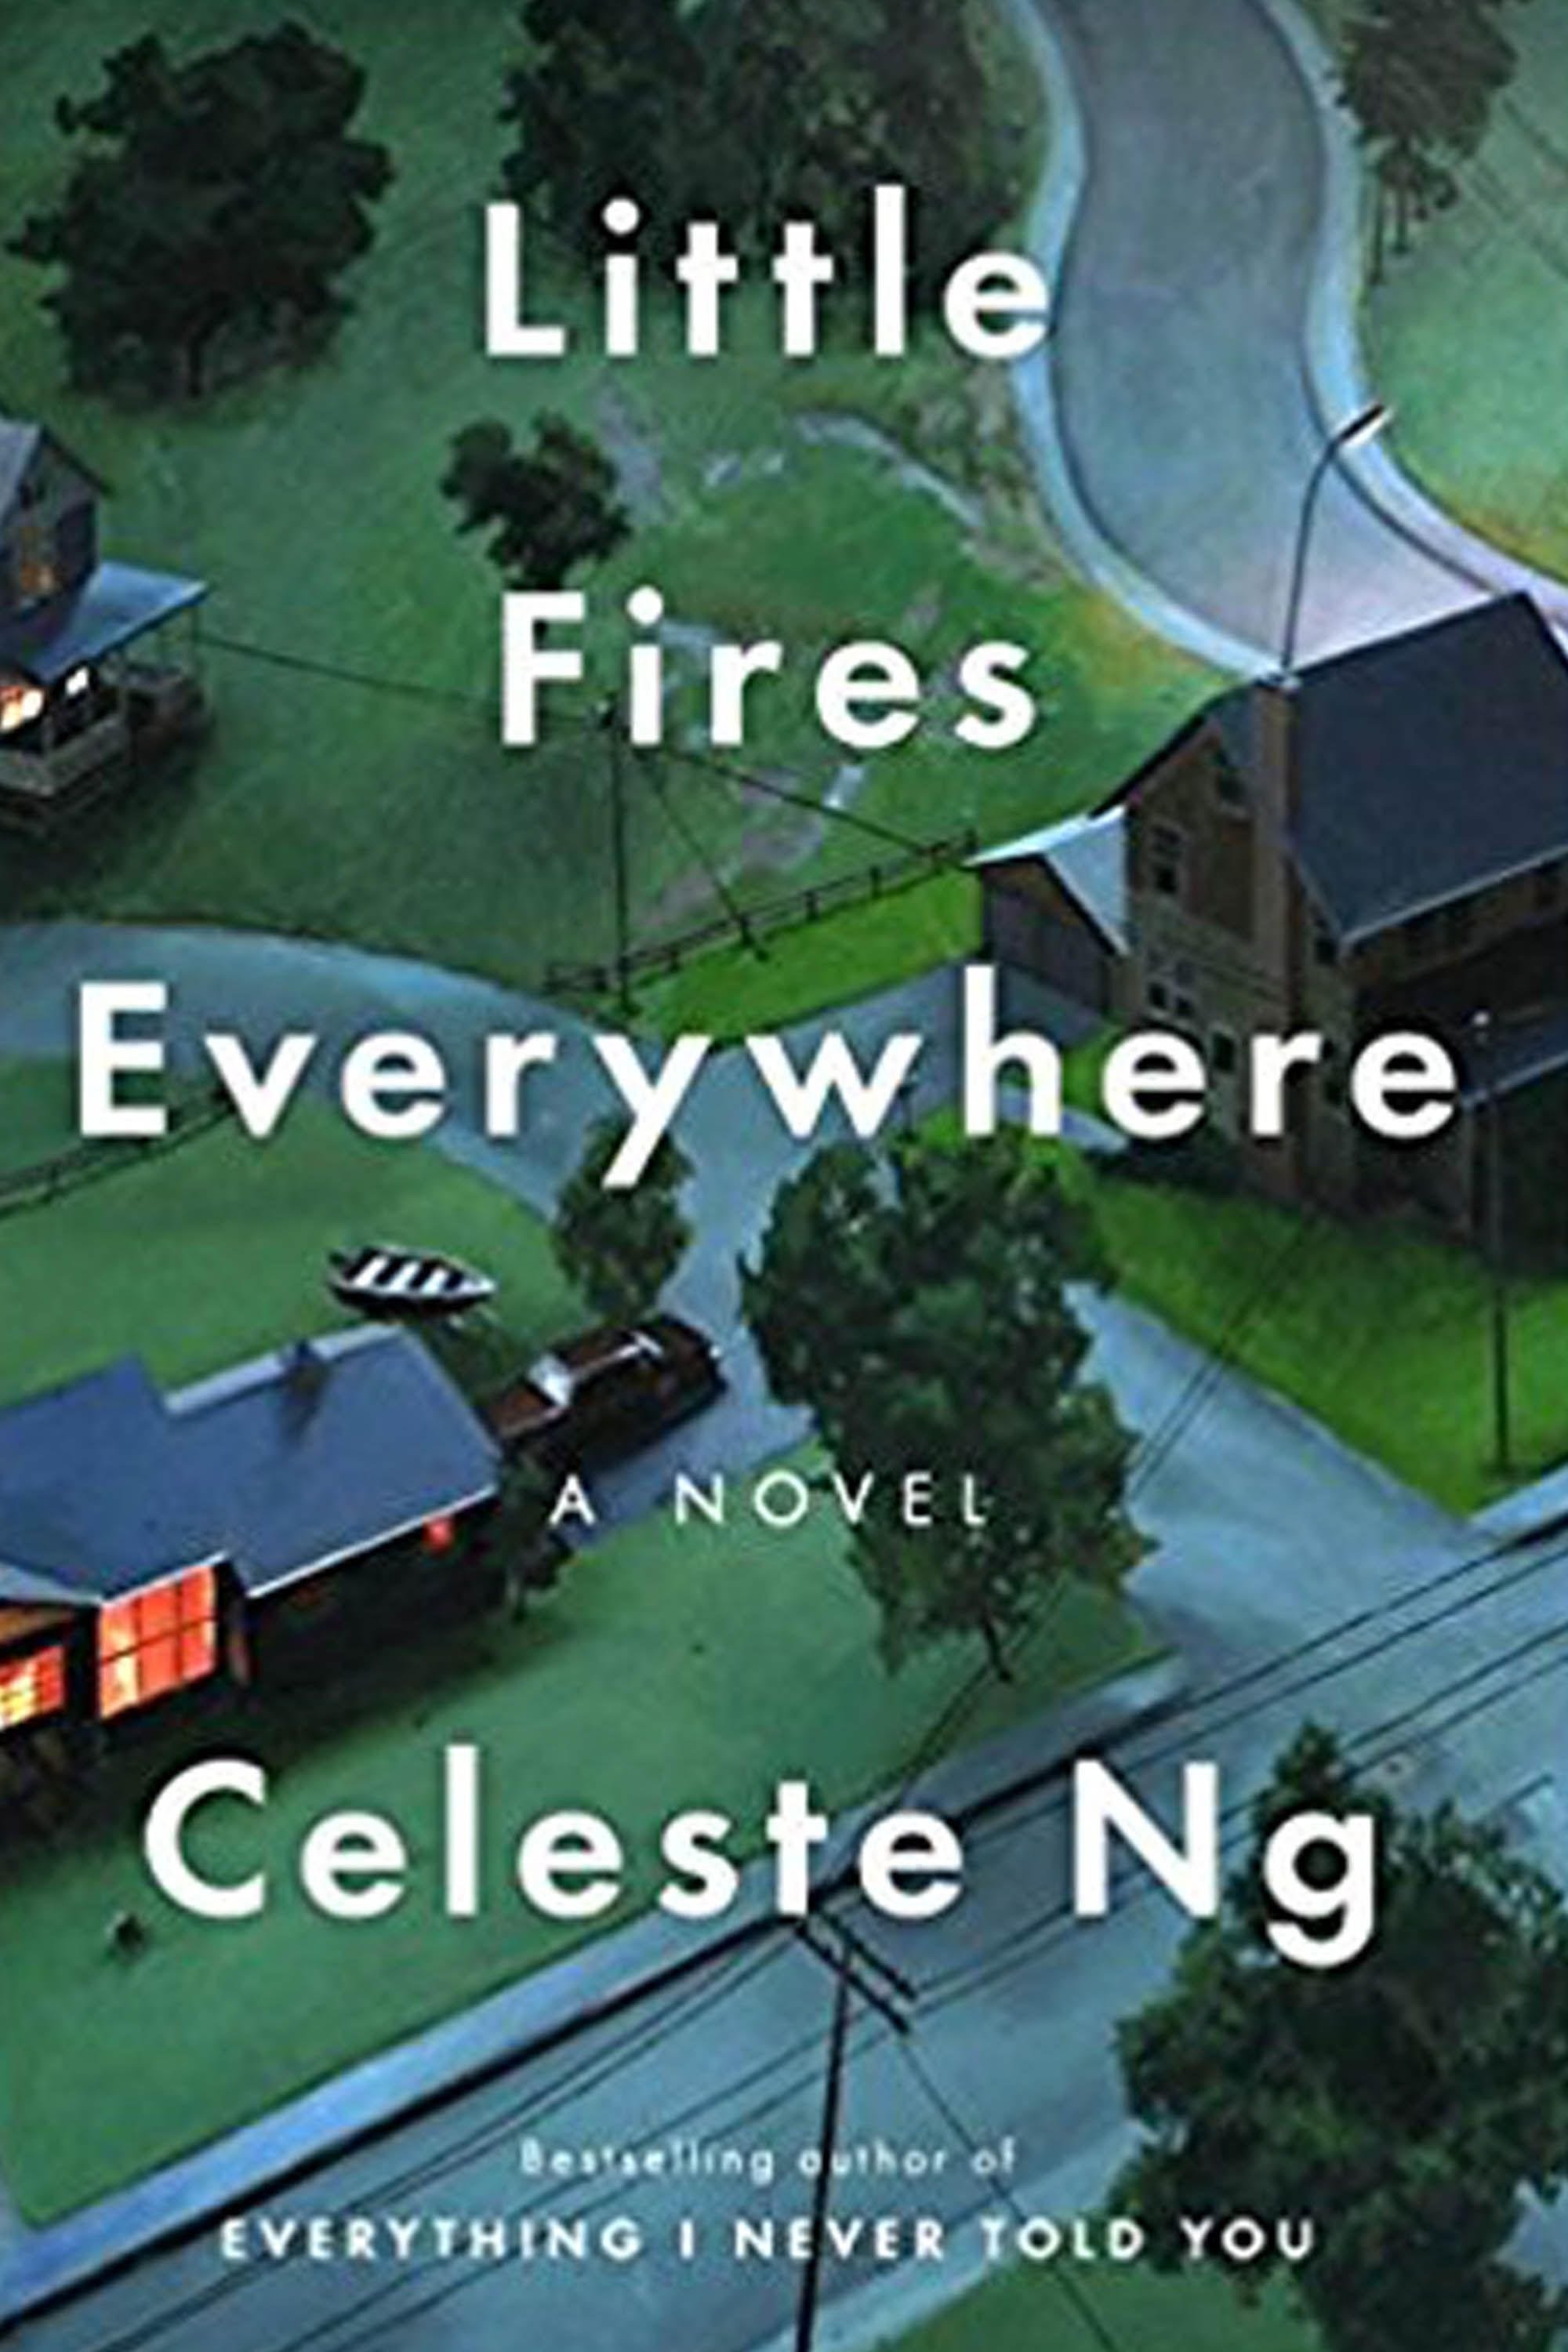 """<p>Celeste Ng enchanted readers with her debut novel about the unexpected death of a teenage Chinese-American girl,<em data-verified=""""redactor"""" data-redactor-tag=""""em"""">Everything I Never Told You</em><span class=""""redactor-invisible-space"""" data-verified=""""redactor"""" data-redactor-tag=""""span"""" data-redactor-class=""""redactor-invisible-space""""><em data-verified=""""redactor"""" data-redactor-tag=""""em"""">.</em><span class=""""redactor-invisible-space"""" data-verified=""""redactor"""" data-redactor-tag=""""span"""" data-redactor-class=""""redactor-invisible-space""""> Now she returns with another tale of a quiet town slowly devastated by mystery, this time in Cleveland's Shaker Heights, where the arrival of asingle mother and her daughterbegin to complicate the decisions of the families around them.(<a href=""""https://www.amazon.com/Everything-Never-Told-You-Awards-ebook/dp/B00G3L7V0C"""" data-tracking-id=""""recirc-text-link"""">September 12, Penguin Press</a>)</span></span></p>"""